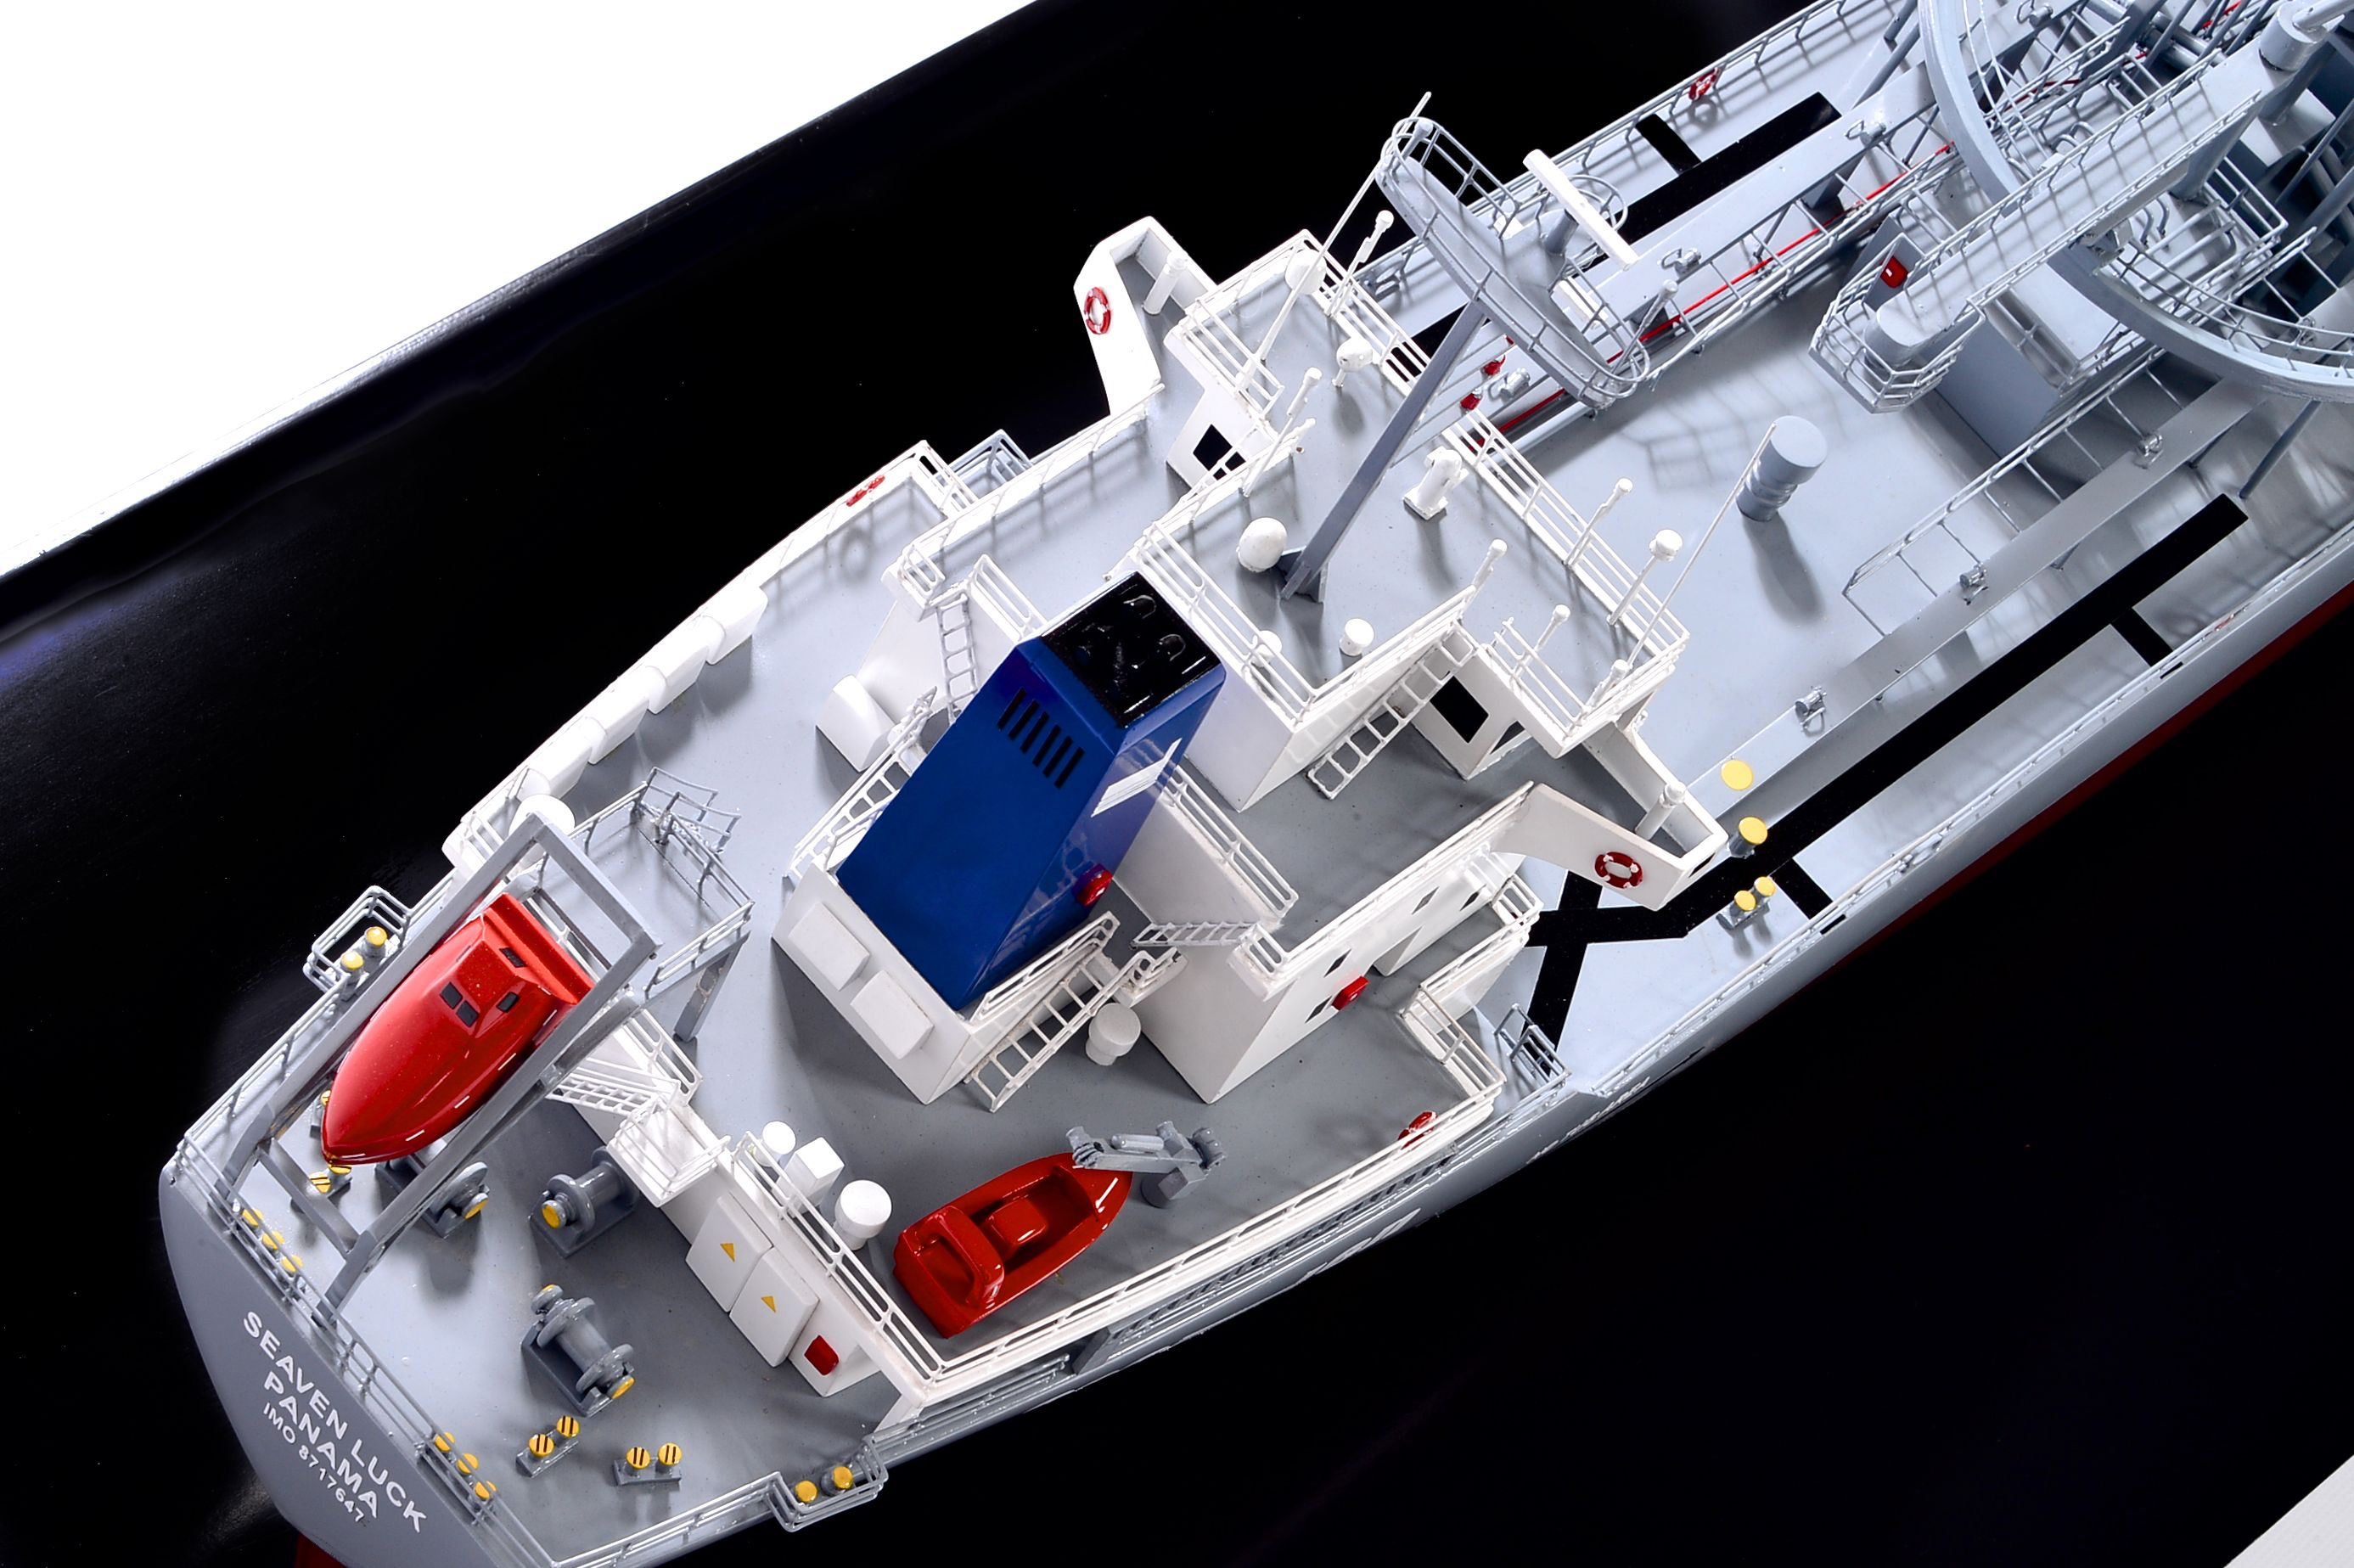 2474-14129-Seaven-Luck-Model-Ship